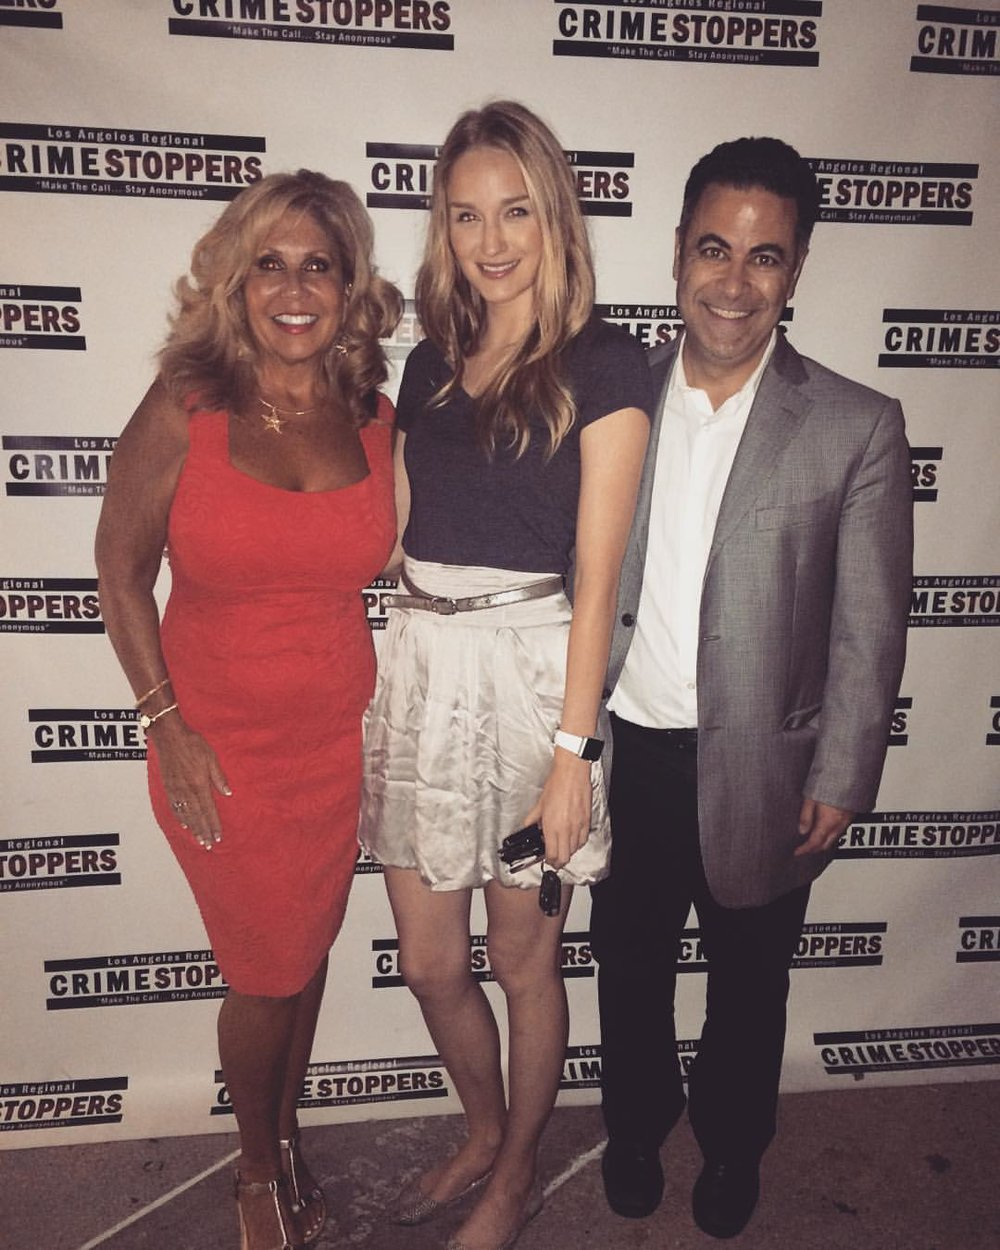 What happens when you go on the  wrong #redcarpet ? You stop #crime & meet great people. #crimestoppers #kcet #globetrekkertv #actress #host #blondehair welcome Michael !